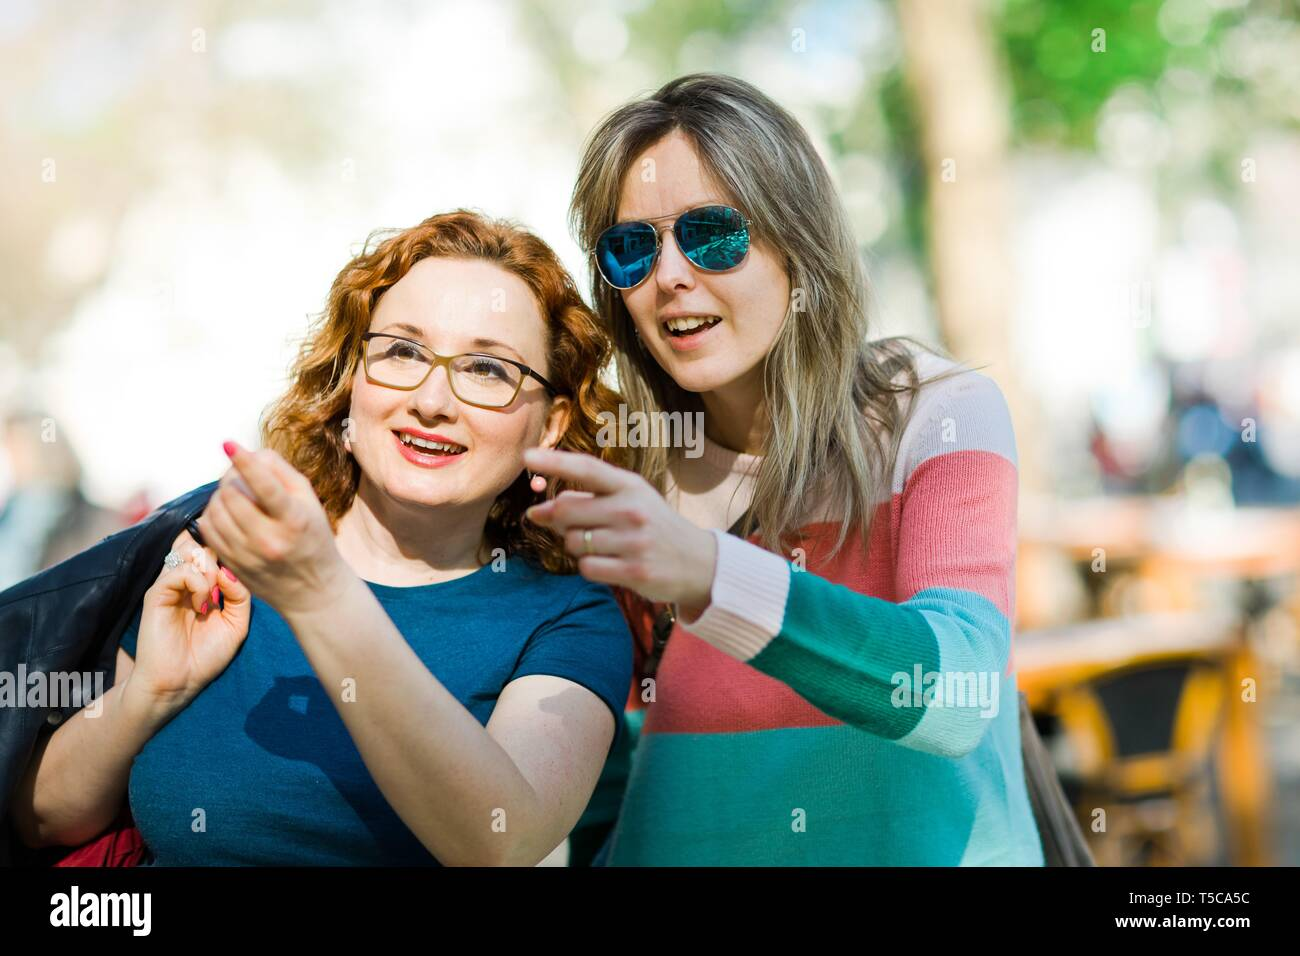 Two women surprisingly pointing to interesting places over the city, showing important places. - Stock Image